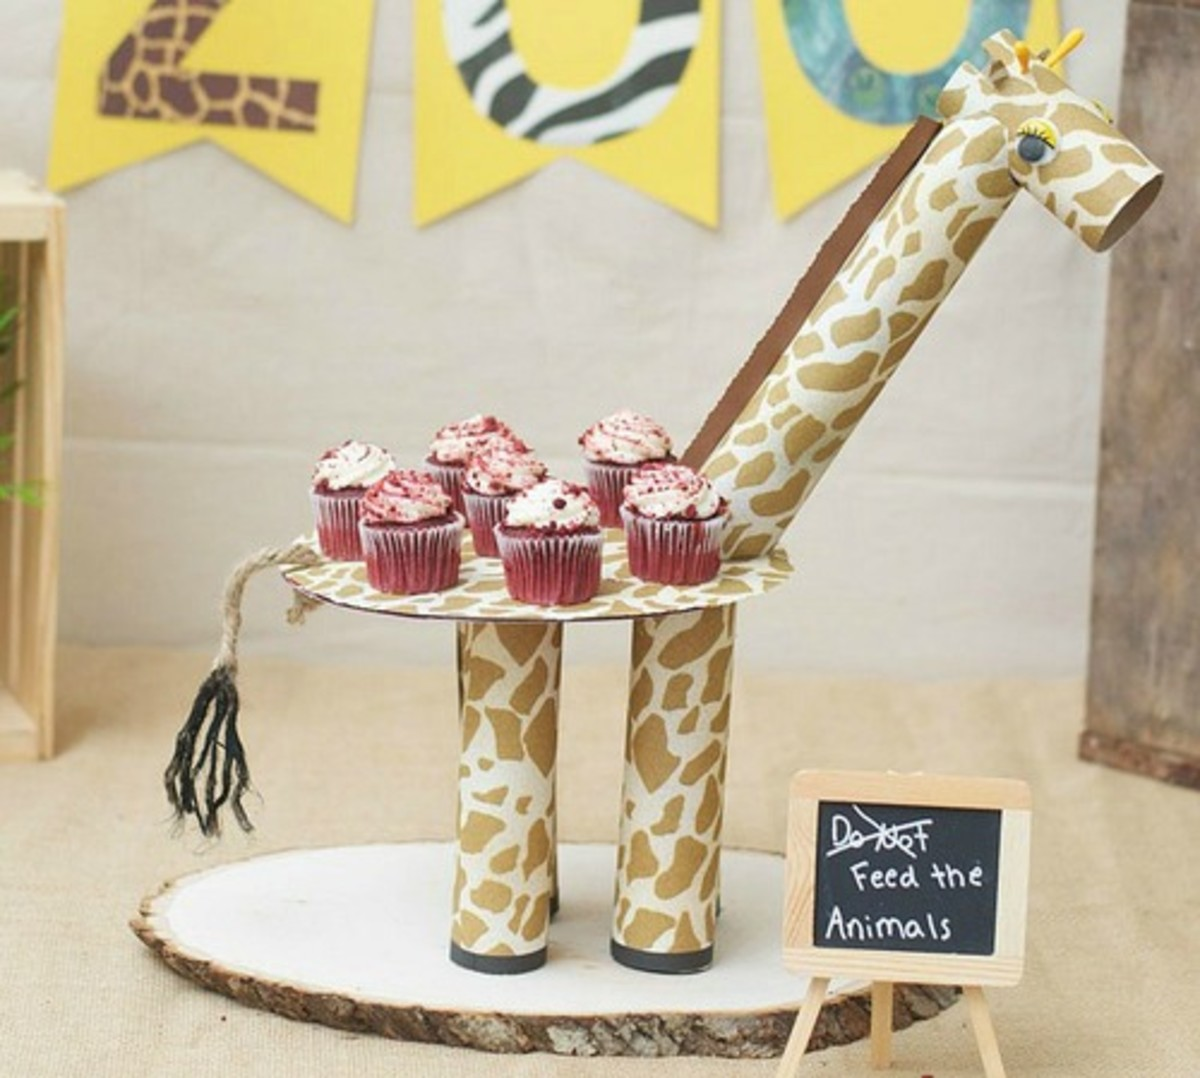 45 Creative and Crafty Cereal Box Craft Ideas